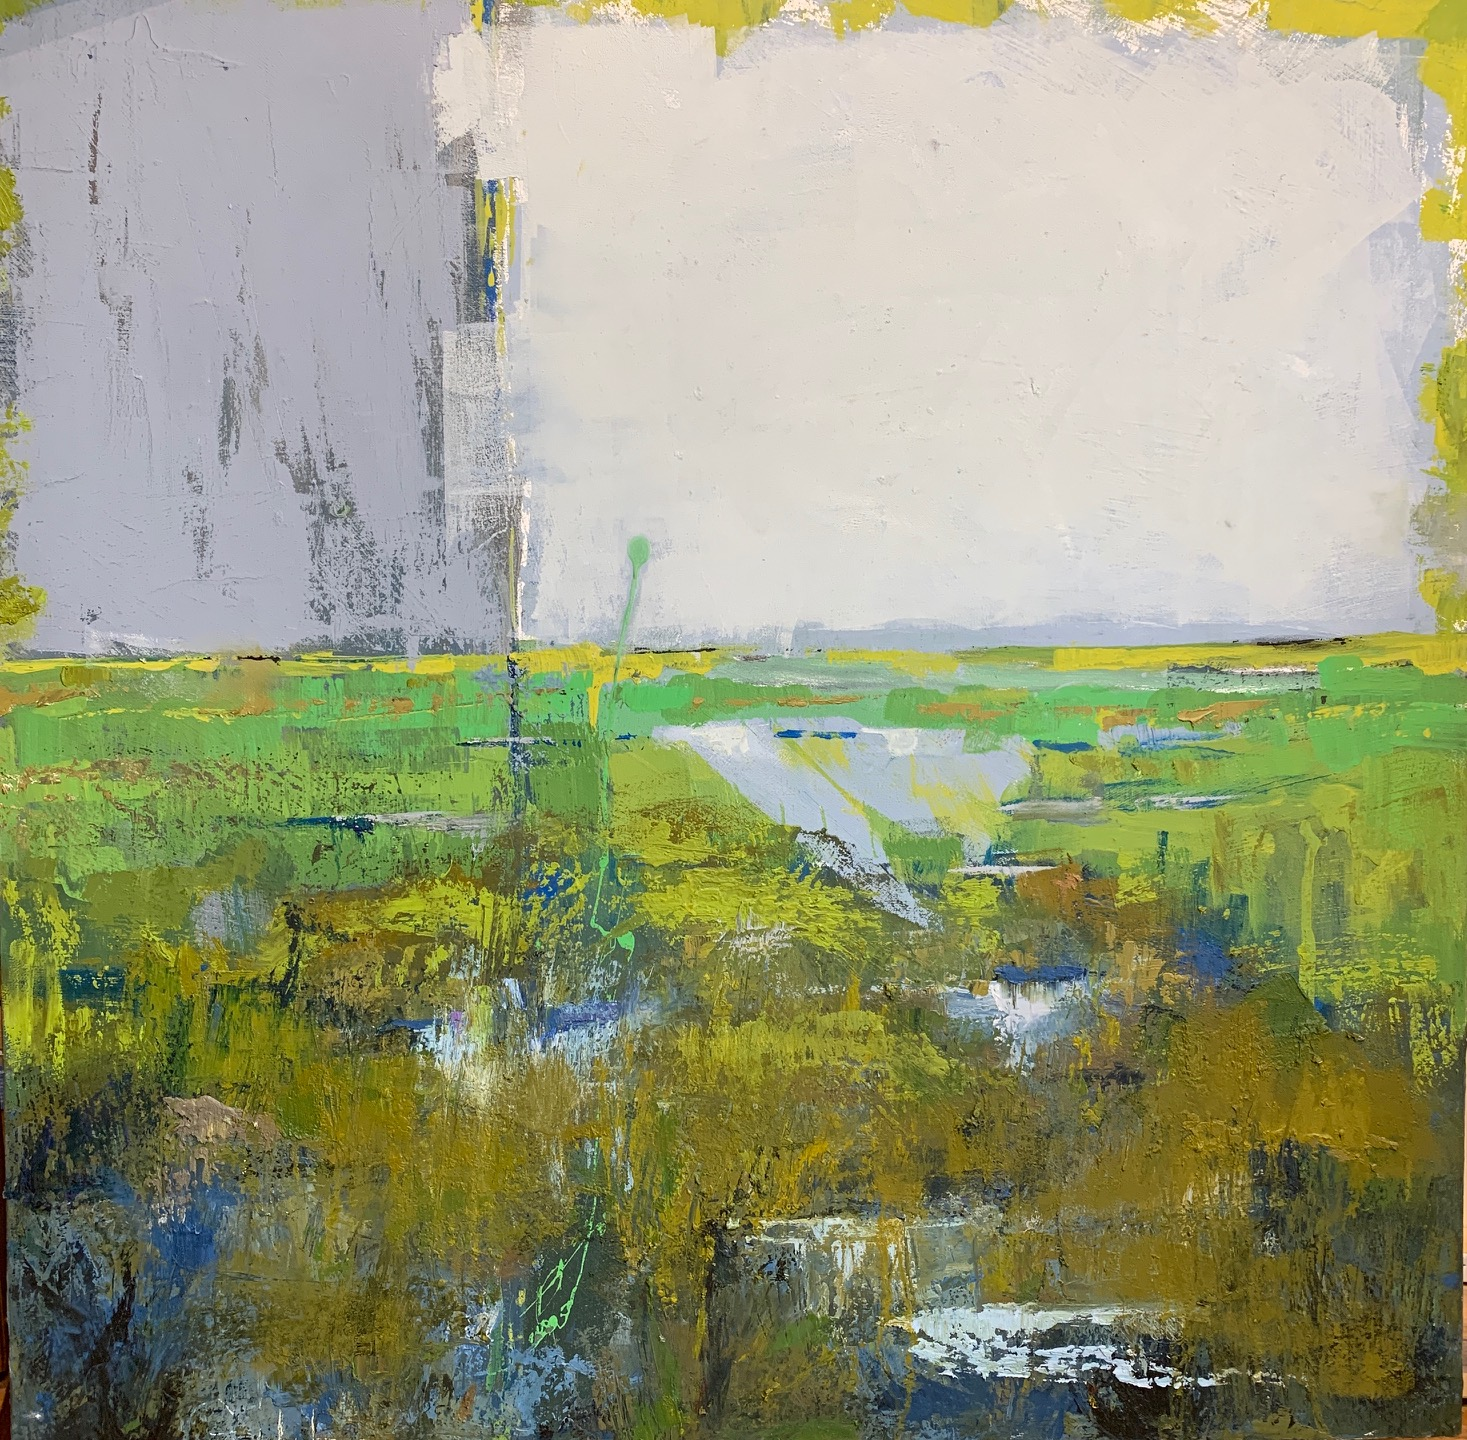 Rain on the Marsh, Mixed Media, 36 x 36